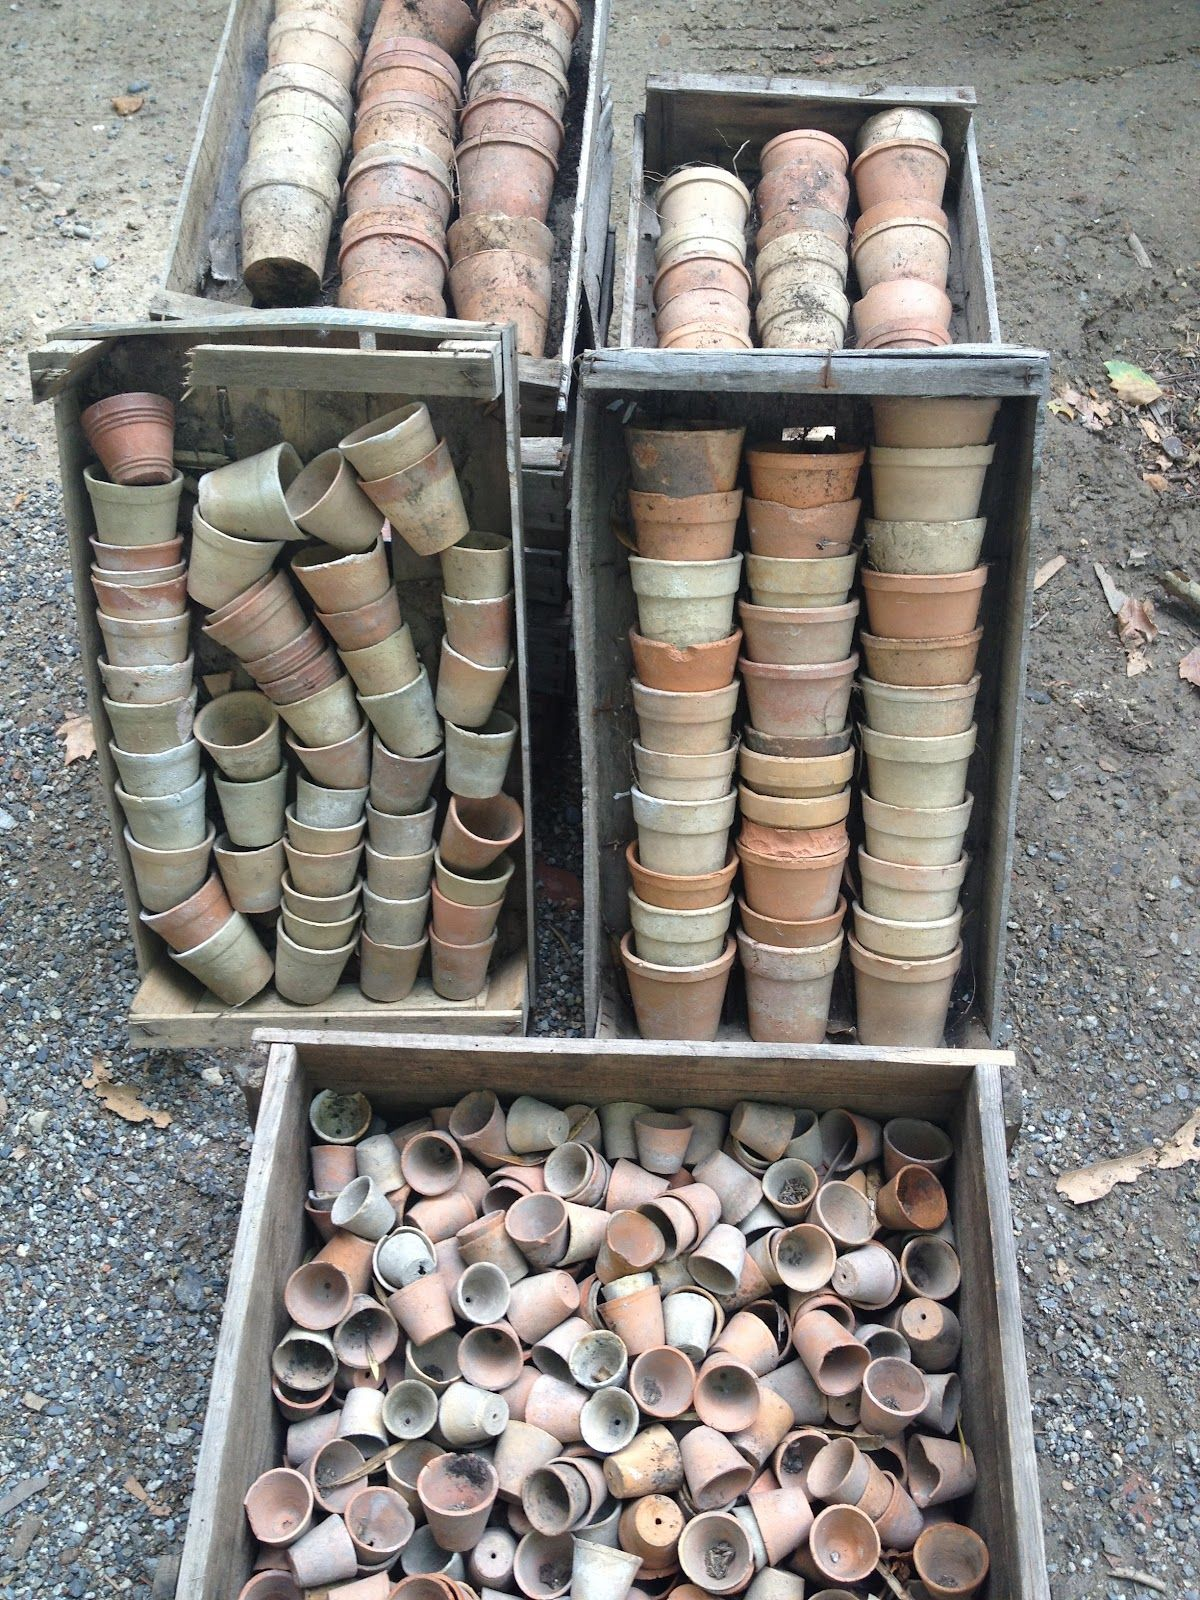 Mini french seedling pots available from lily pond geelong www mini french seedling pots available from lily pond geelong lilypond workwithnaturefo